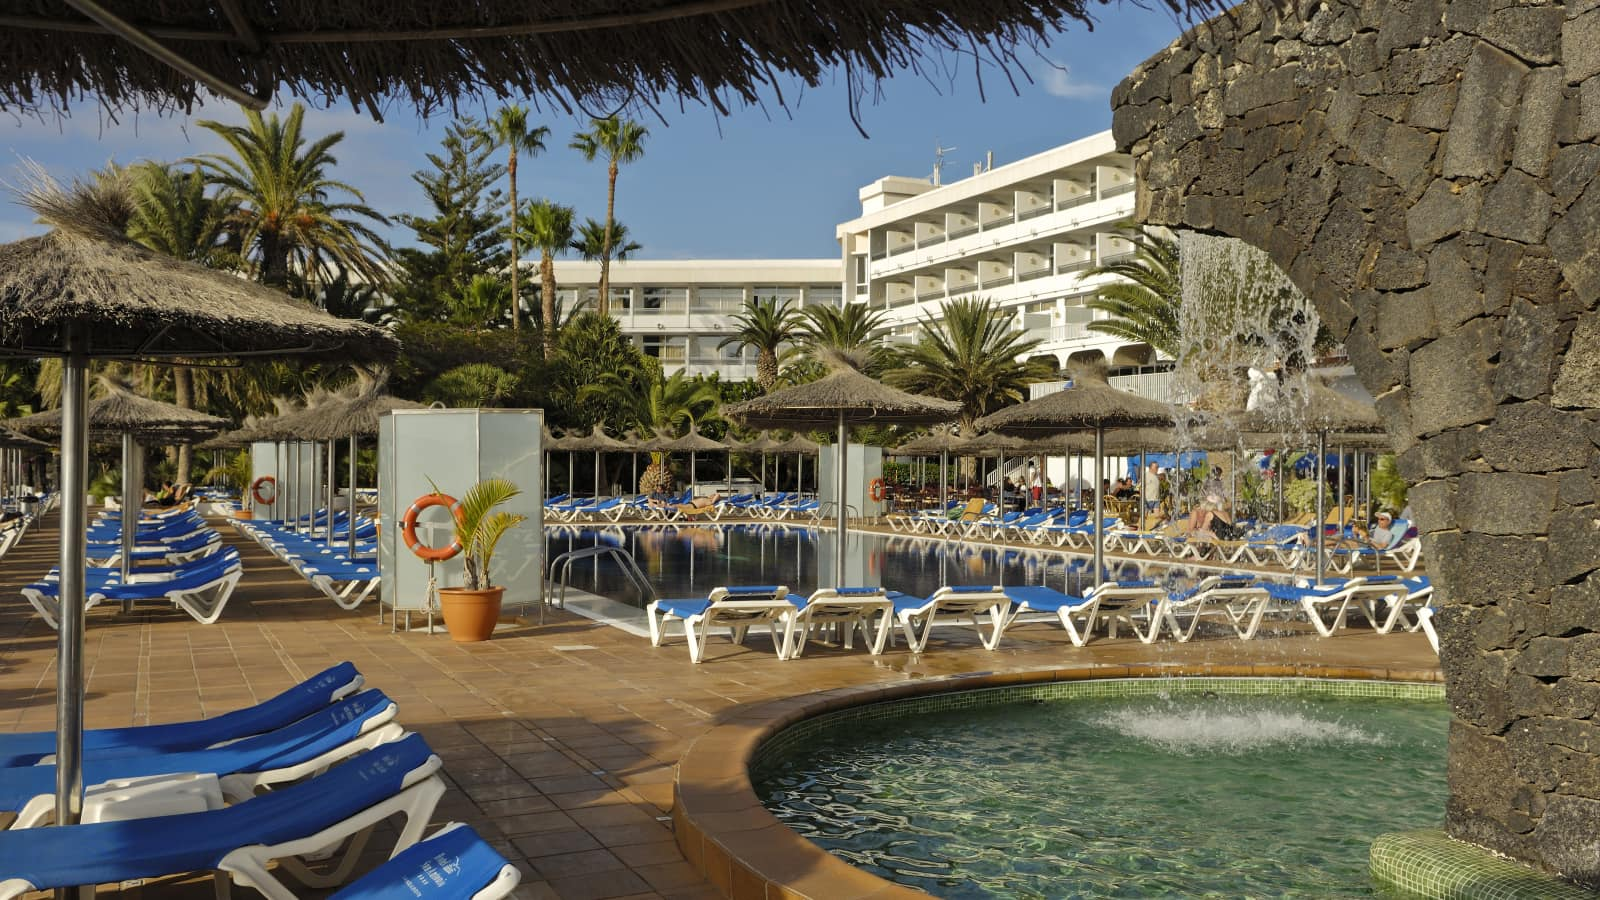 Hotel san antonio lanzarote holidays with topflight for H r motors san antonio